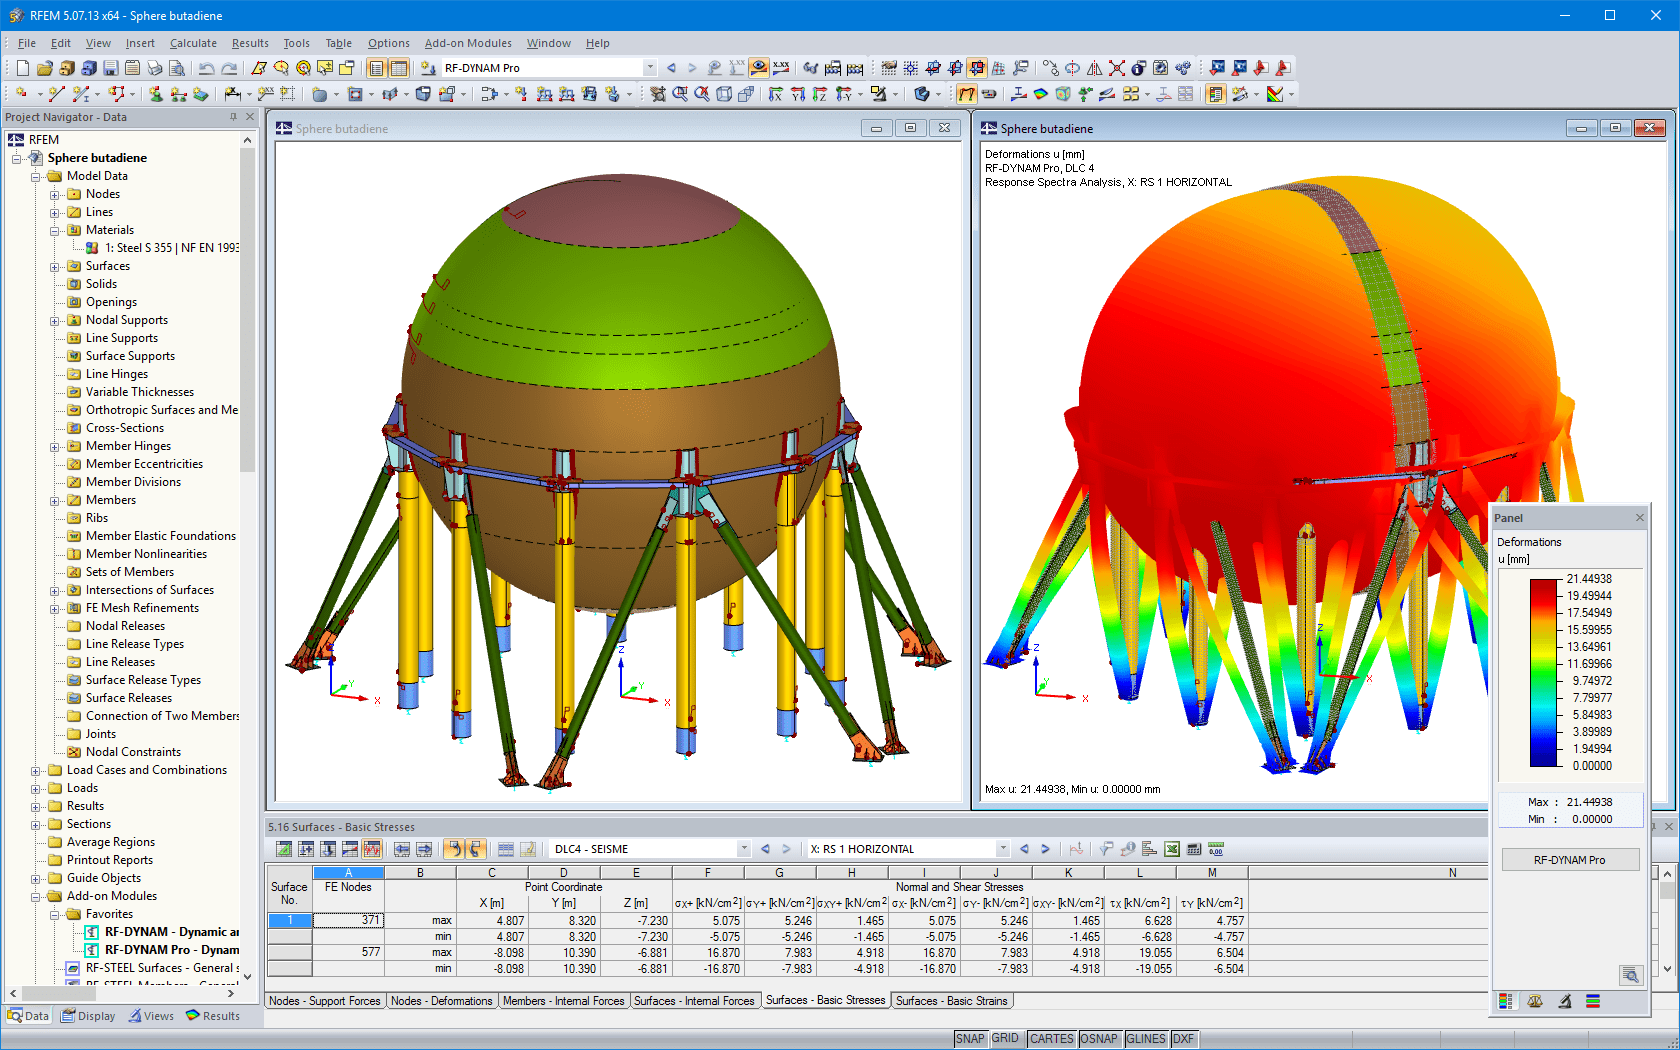 D model of the butadiene storage sphere in RFEM (left) and the mode shape from RF-DYNAM Pro (right)